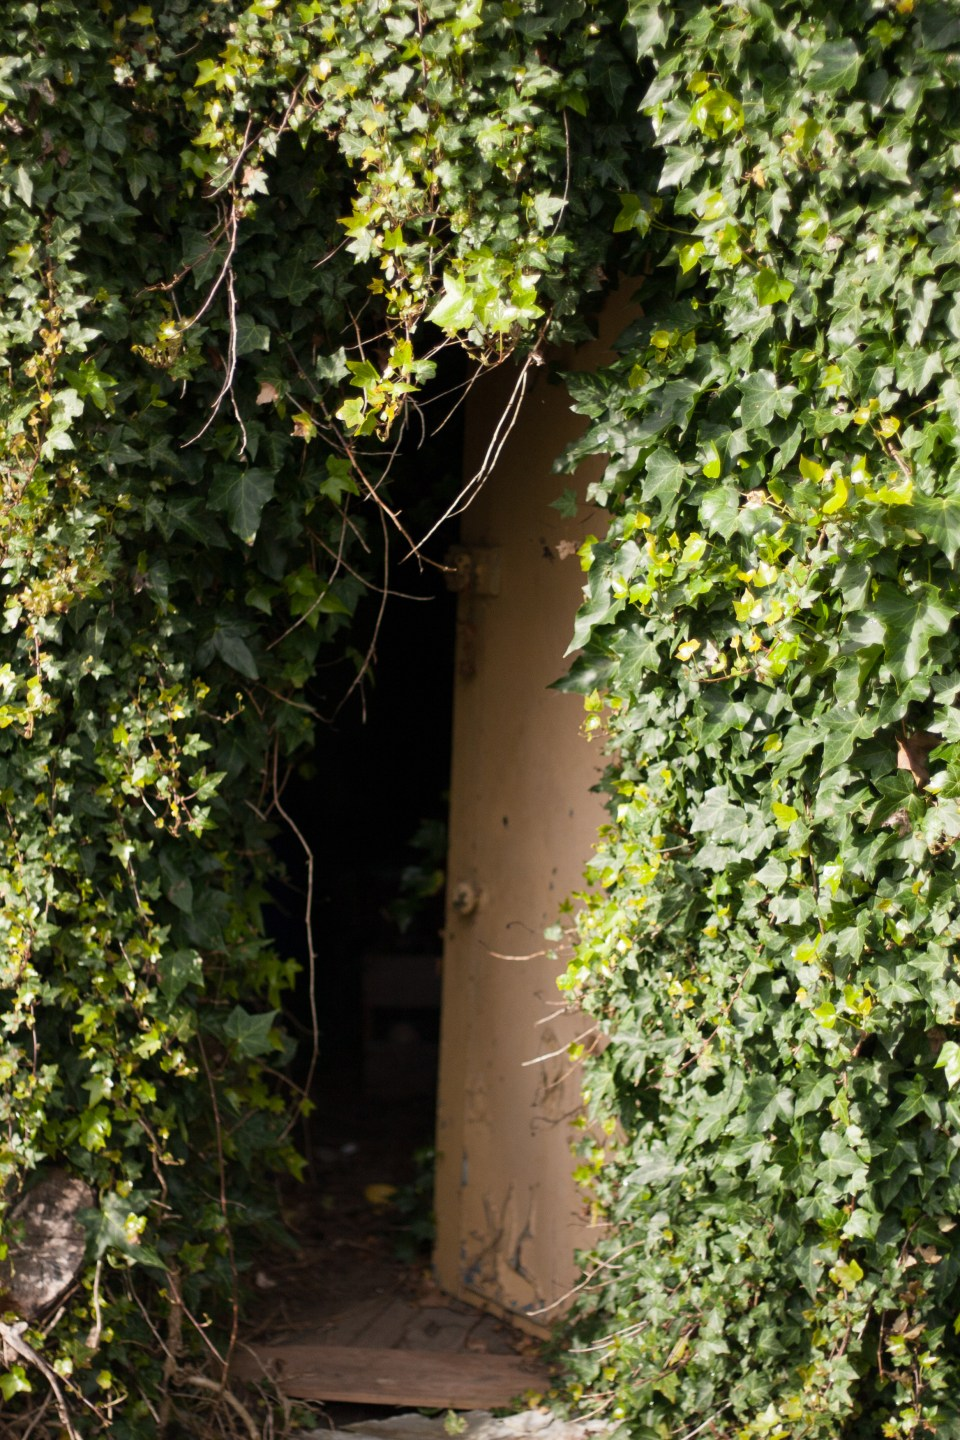 an overgrown shed with door partly open